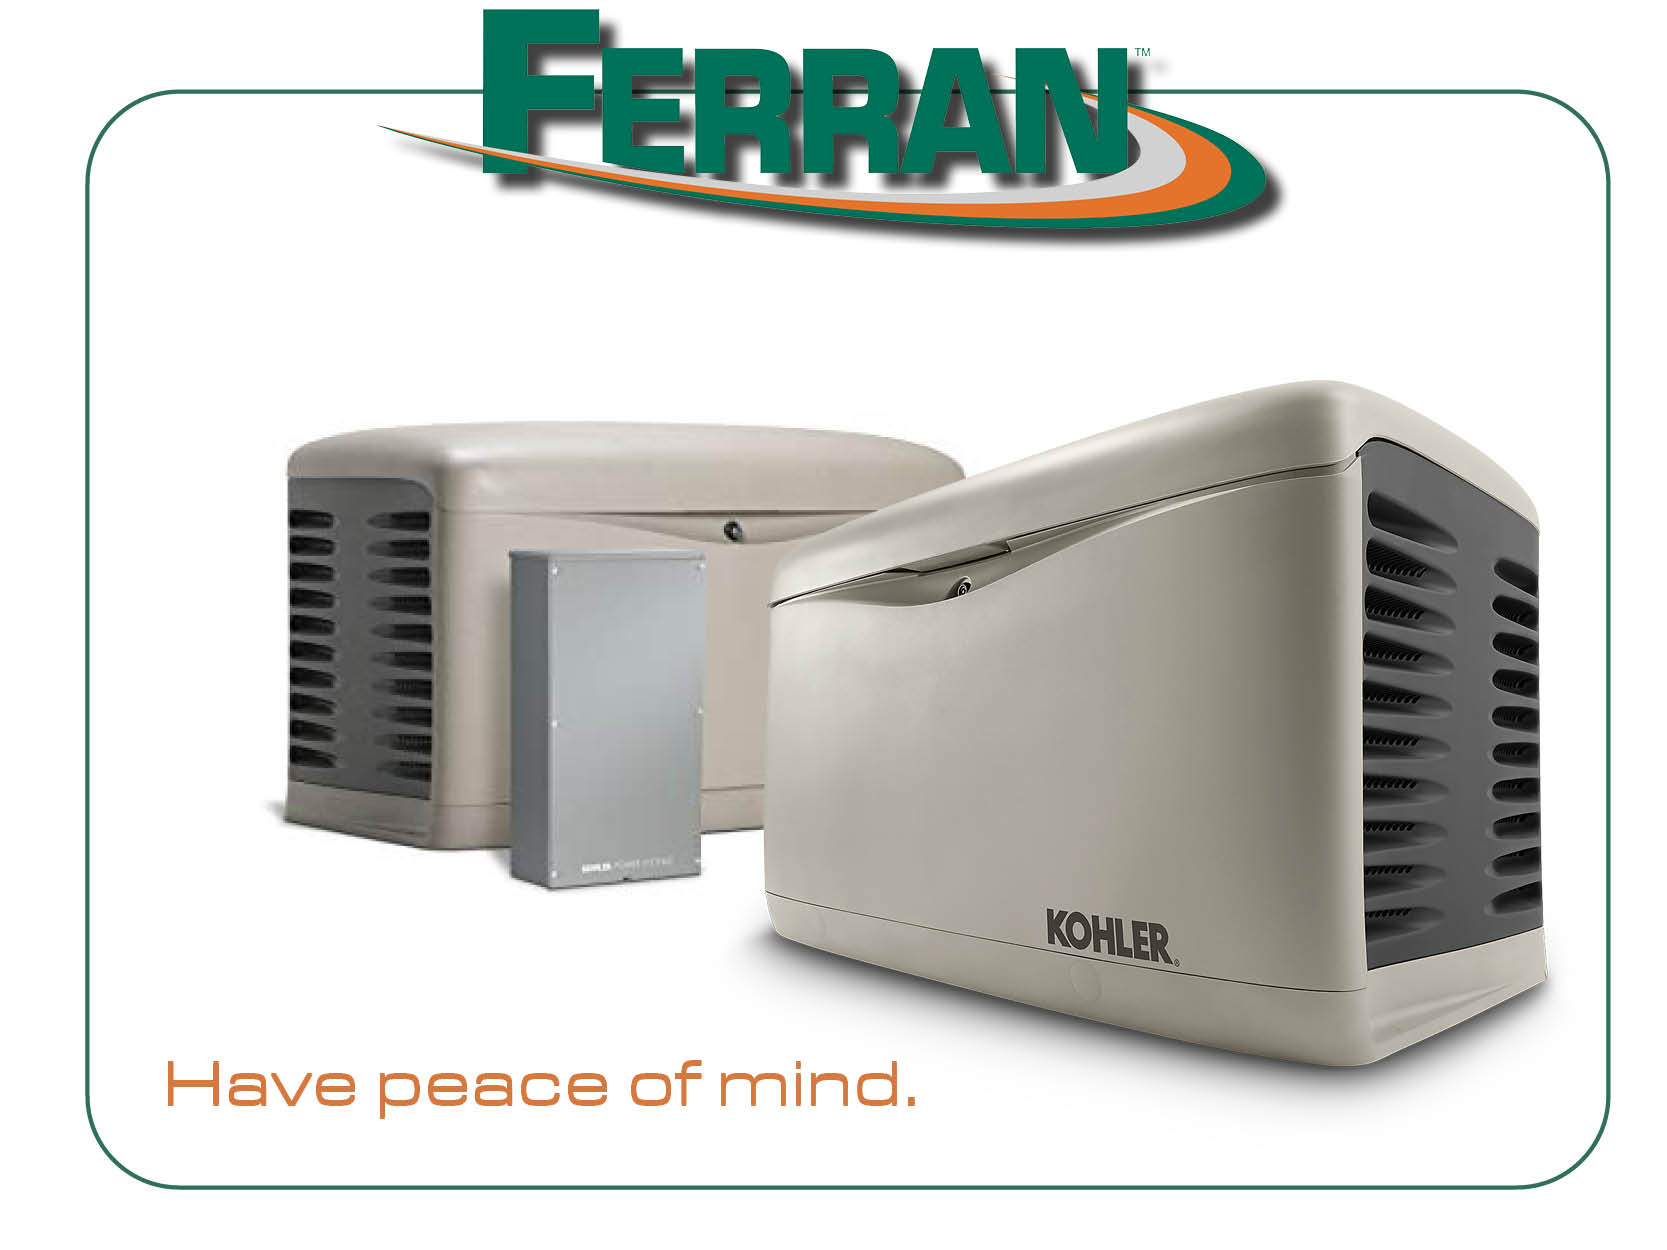 Ferran - Have Peace of Mind